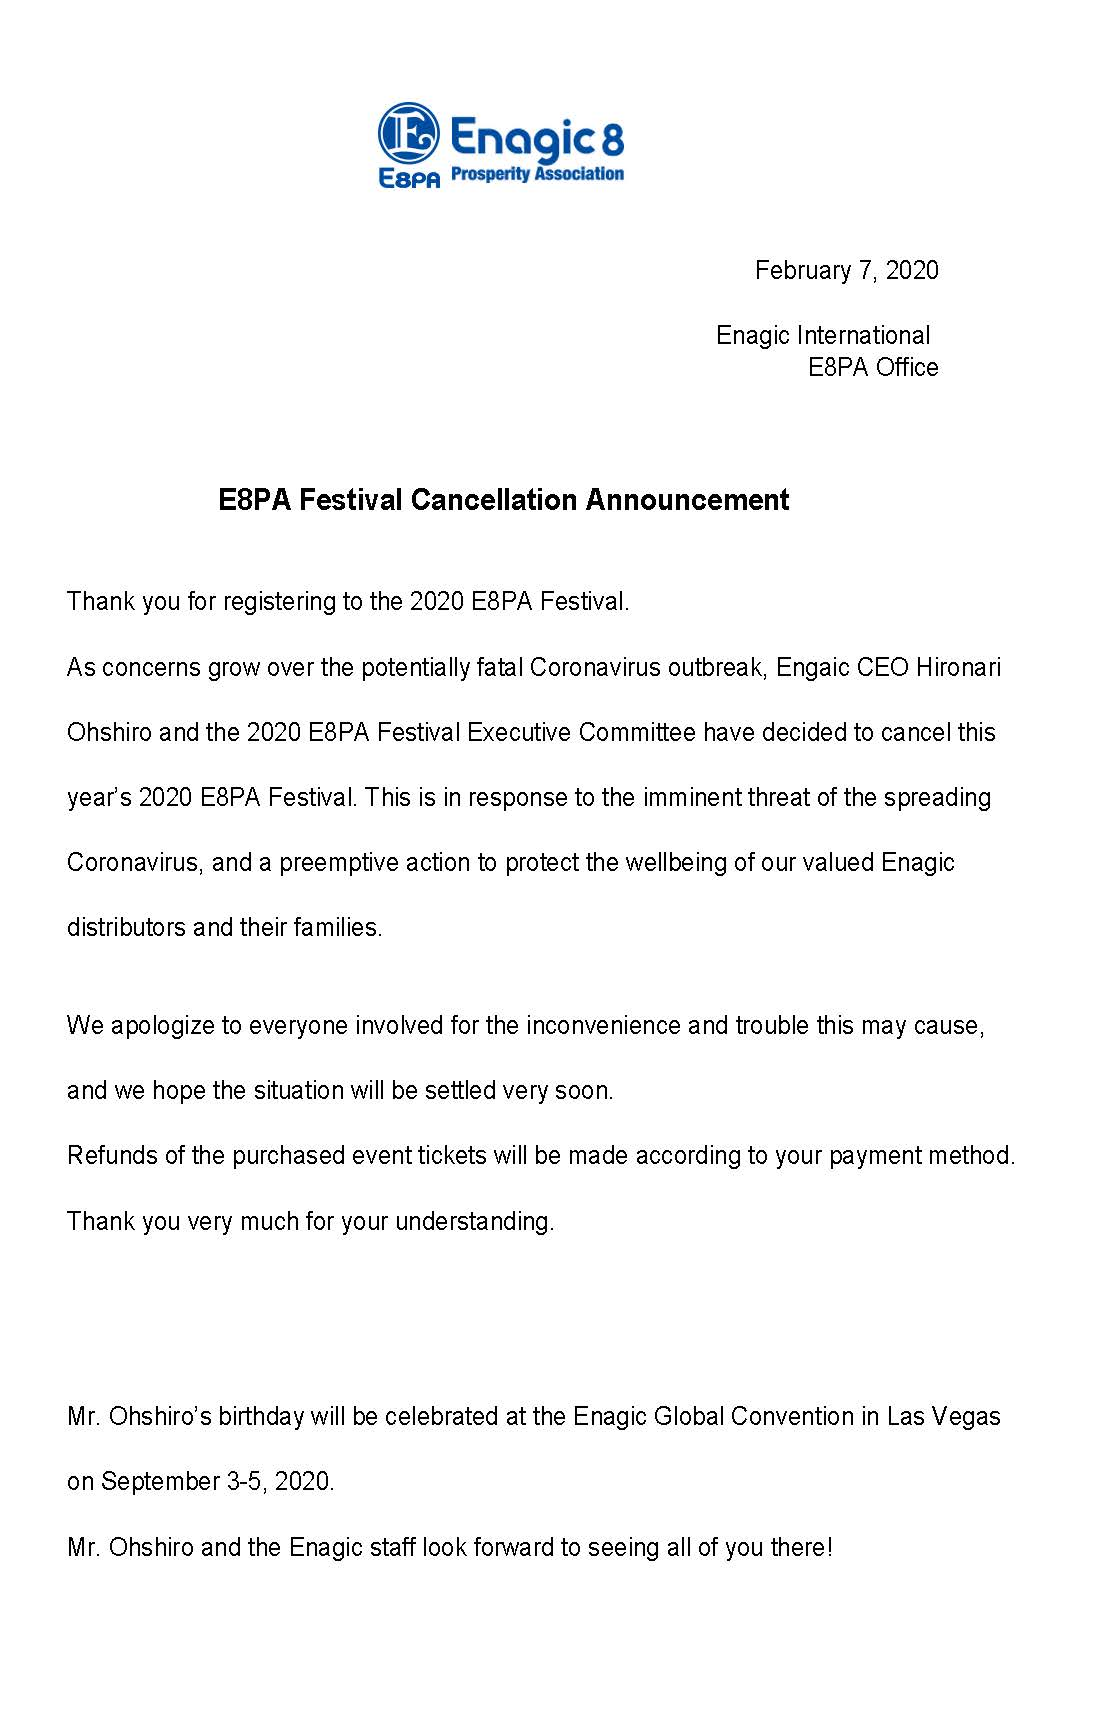 E8PA Festival Cancellation Announcement